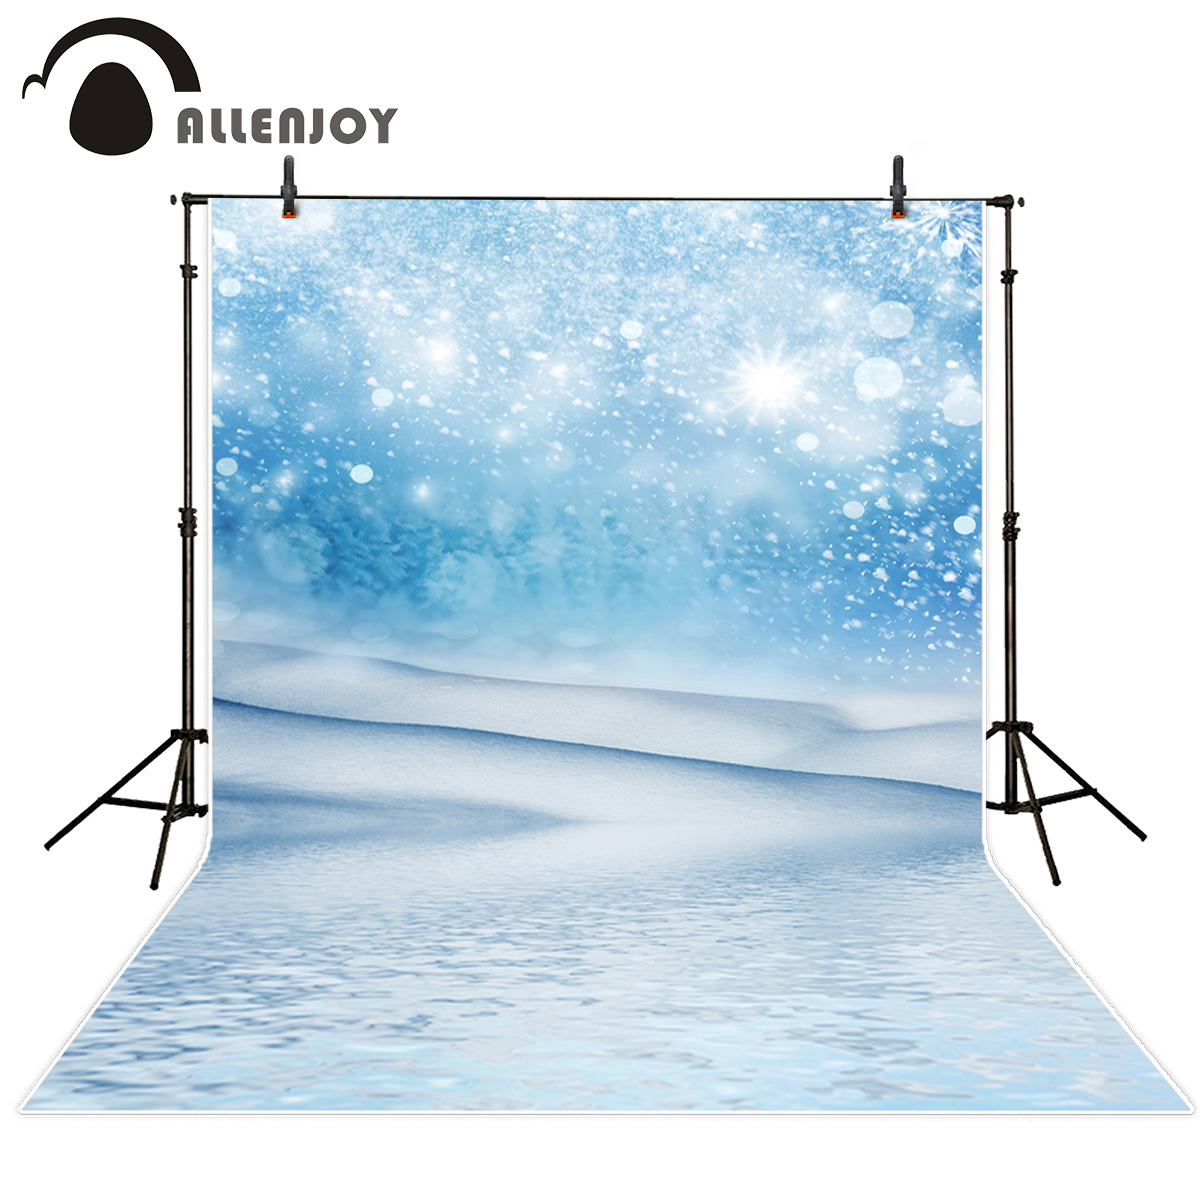 Allenjoy photography background snow winter wihte shiny bokeh photo backdrop vinyl photo backdrop photography backdrop vinyl allenjoy backdrop background wonderland